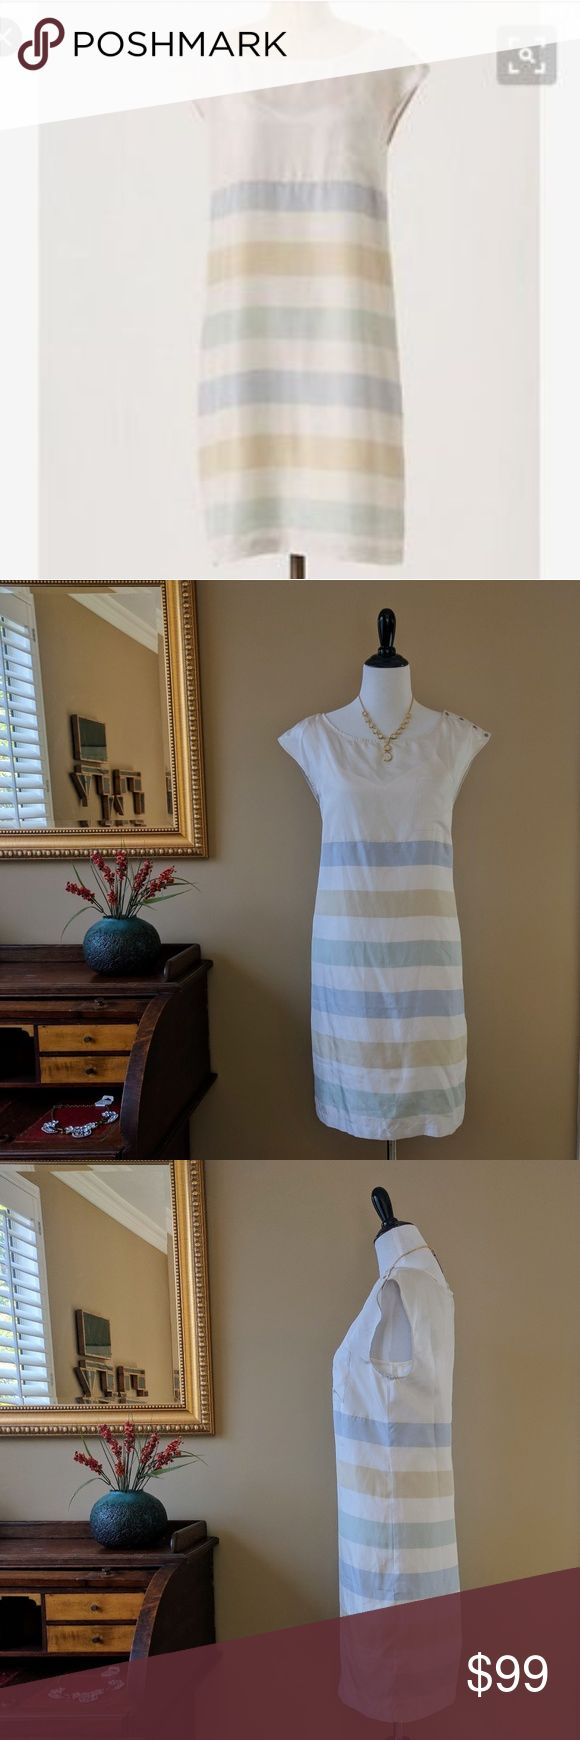 "NWT Anthro Odille Silk Shore House Shift Dress 10 This new with tags ""shore house shift dress"" from Odille for Anthropologie features a 100% silk shift dress with pastel nautical stripes and nautical buttons along left shoulder. Extra button and slip included. Size 10. Approx 19.5"" across the bust when flat, 35"" long. New condition. Anthropologie Dresses"